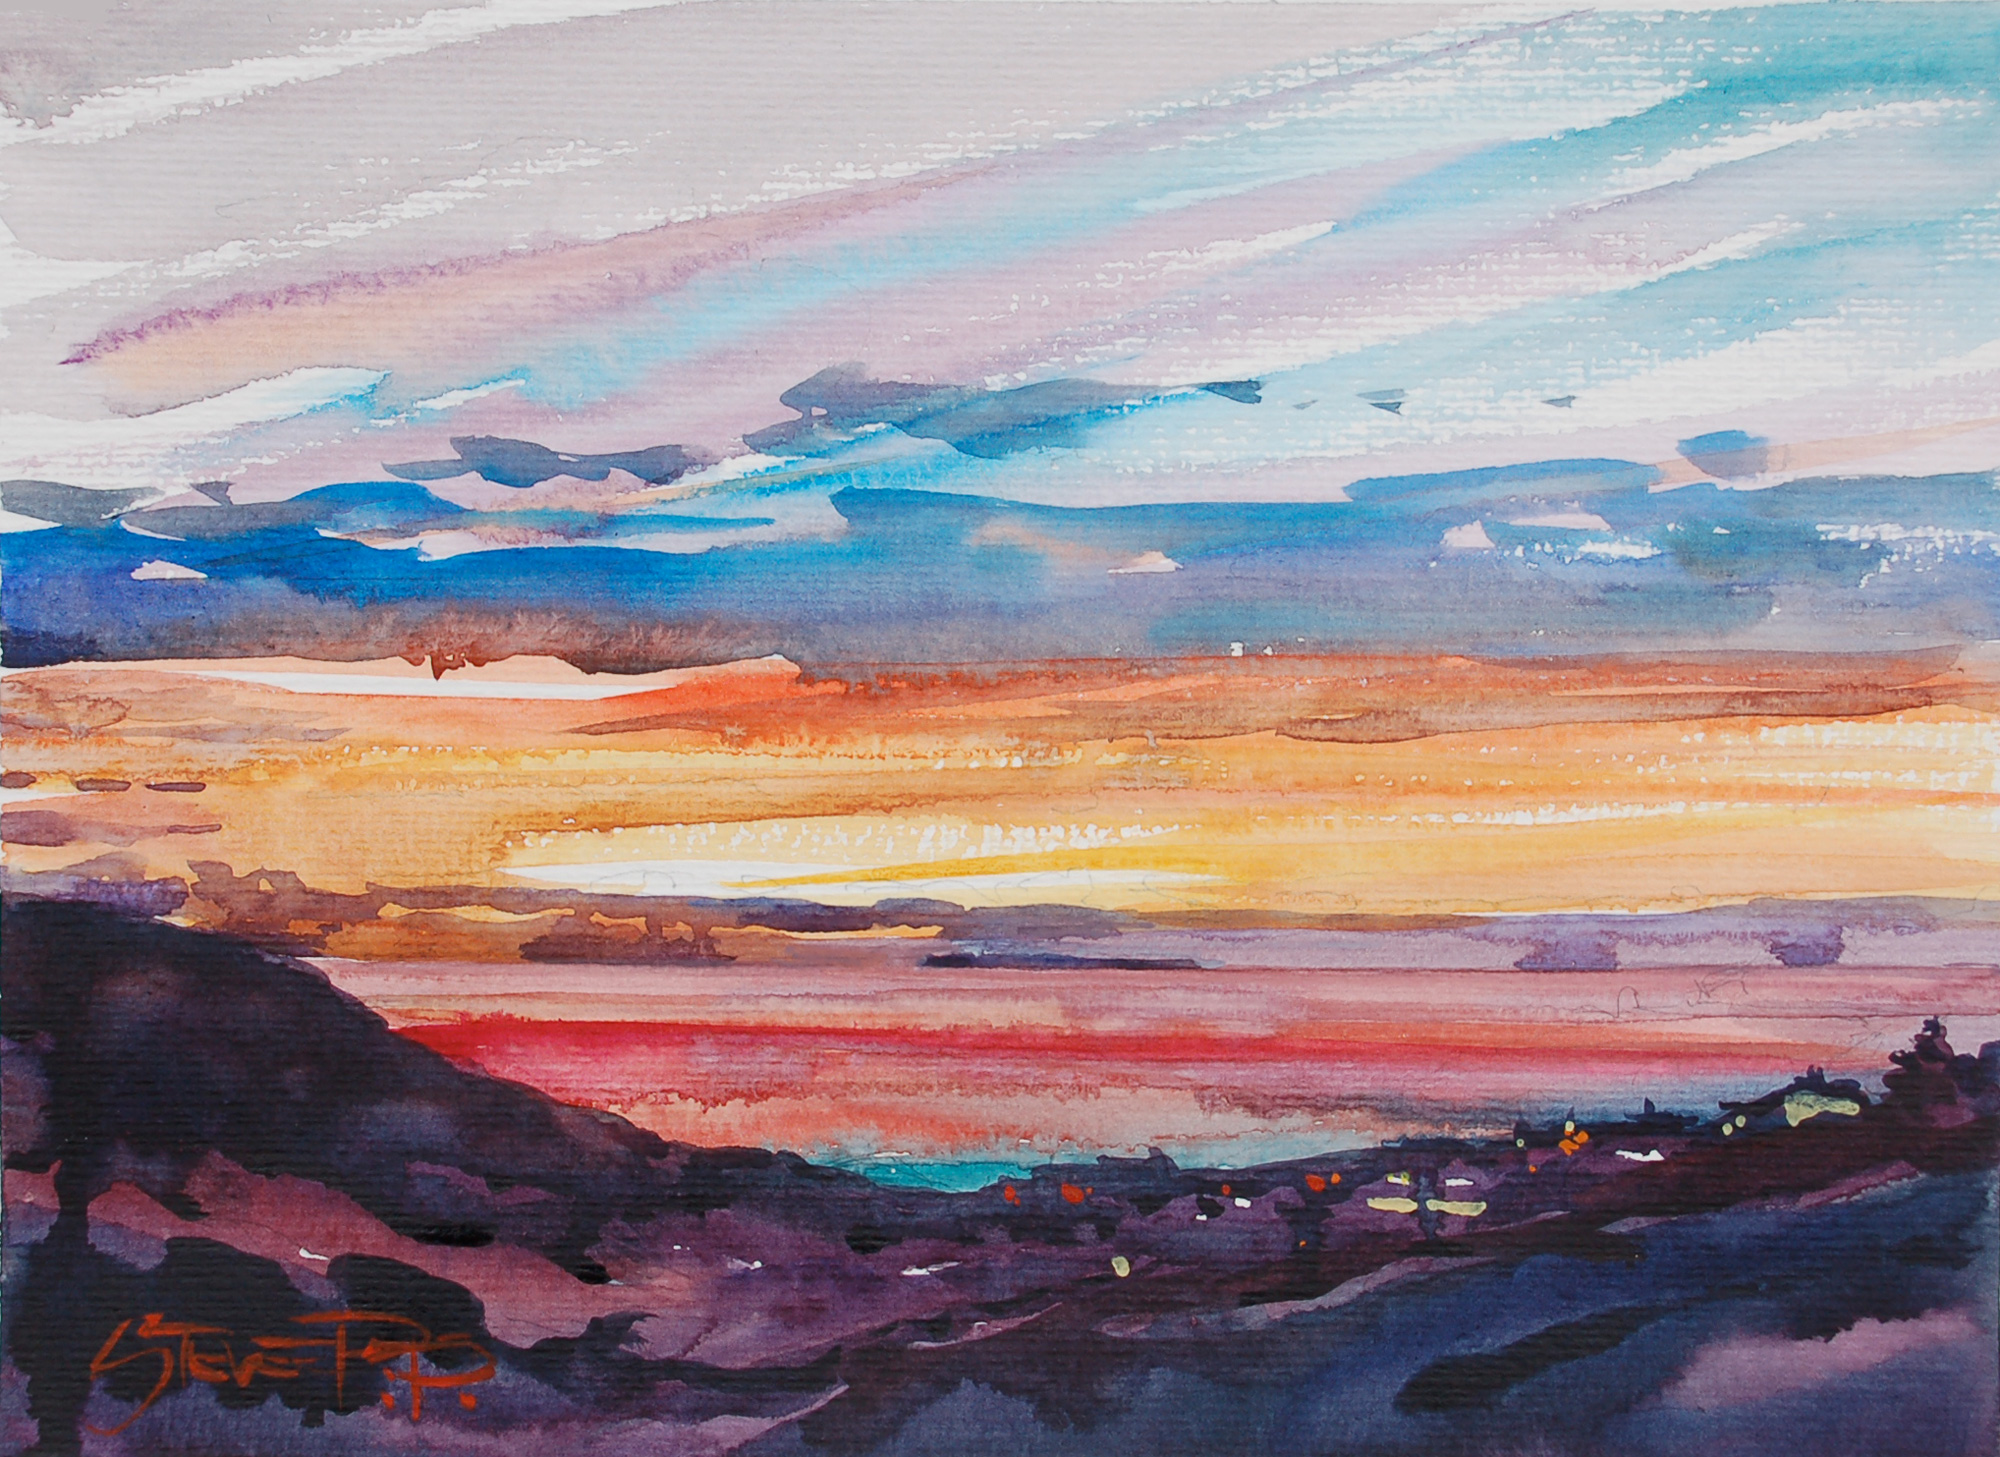 woolacoombe sunset watercolour painting by Steve PP.